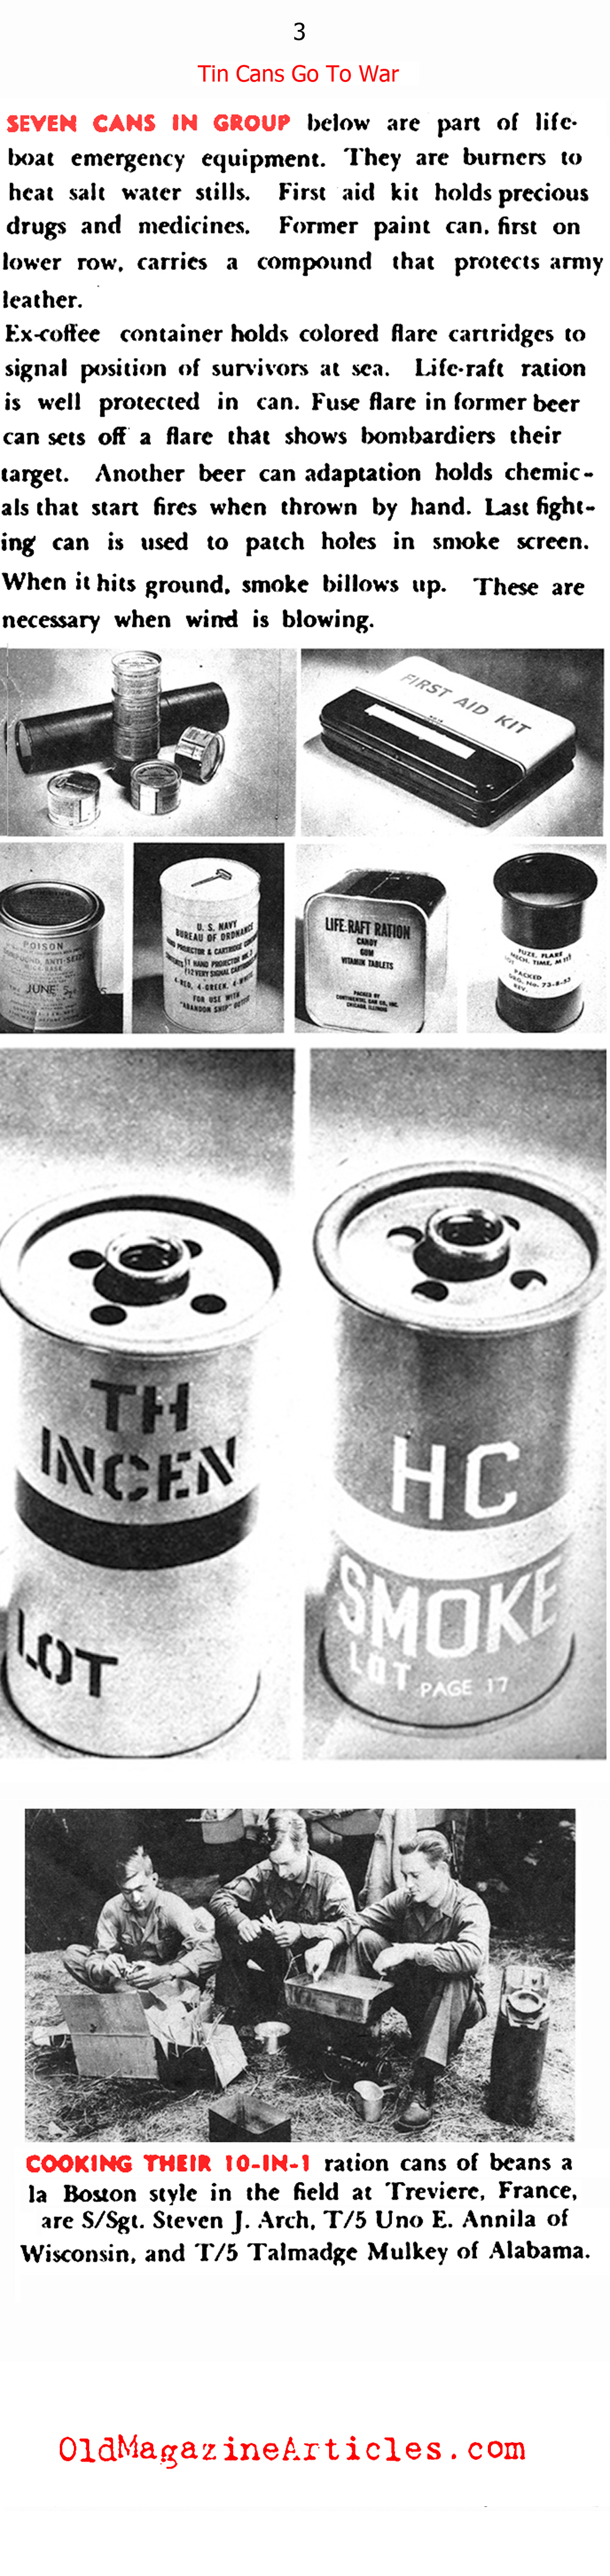 Tin Cans Go to War  (Click Magazine, 1945)